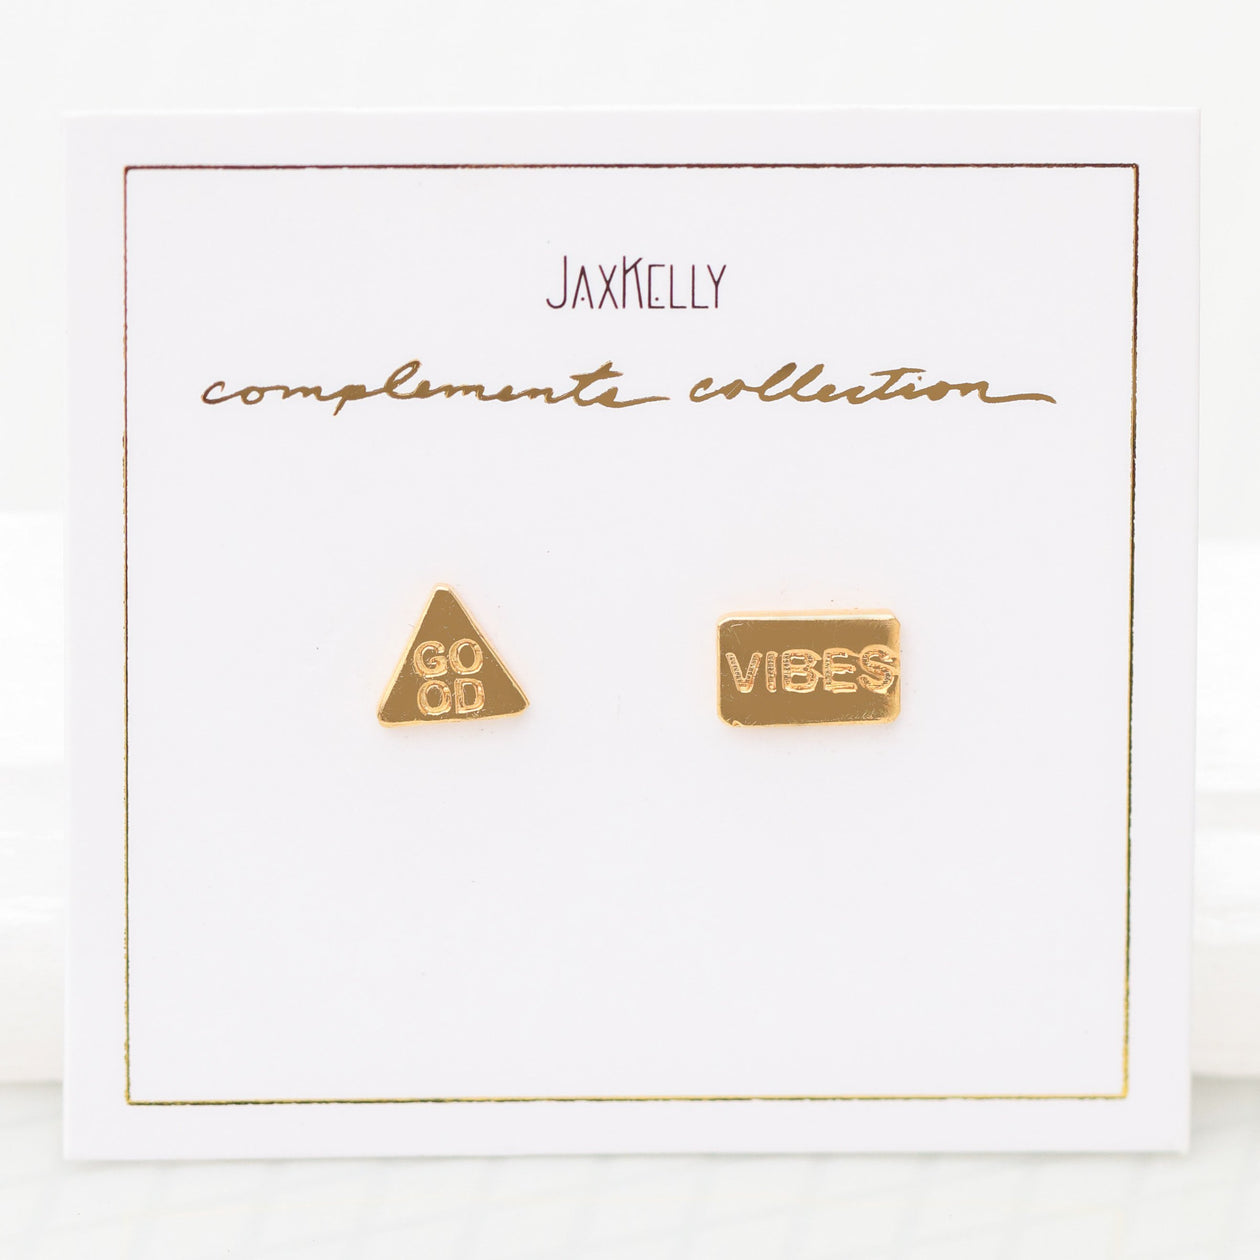 Good Vibes - Complements Collection